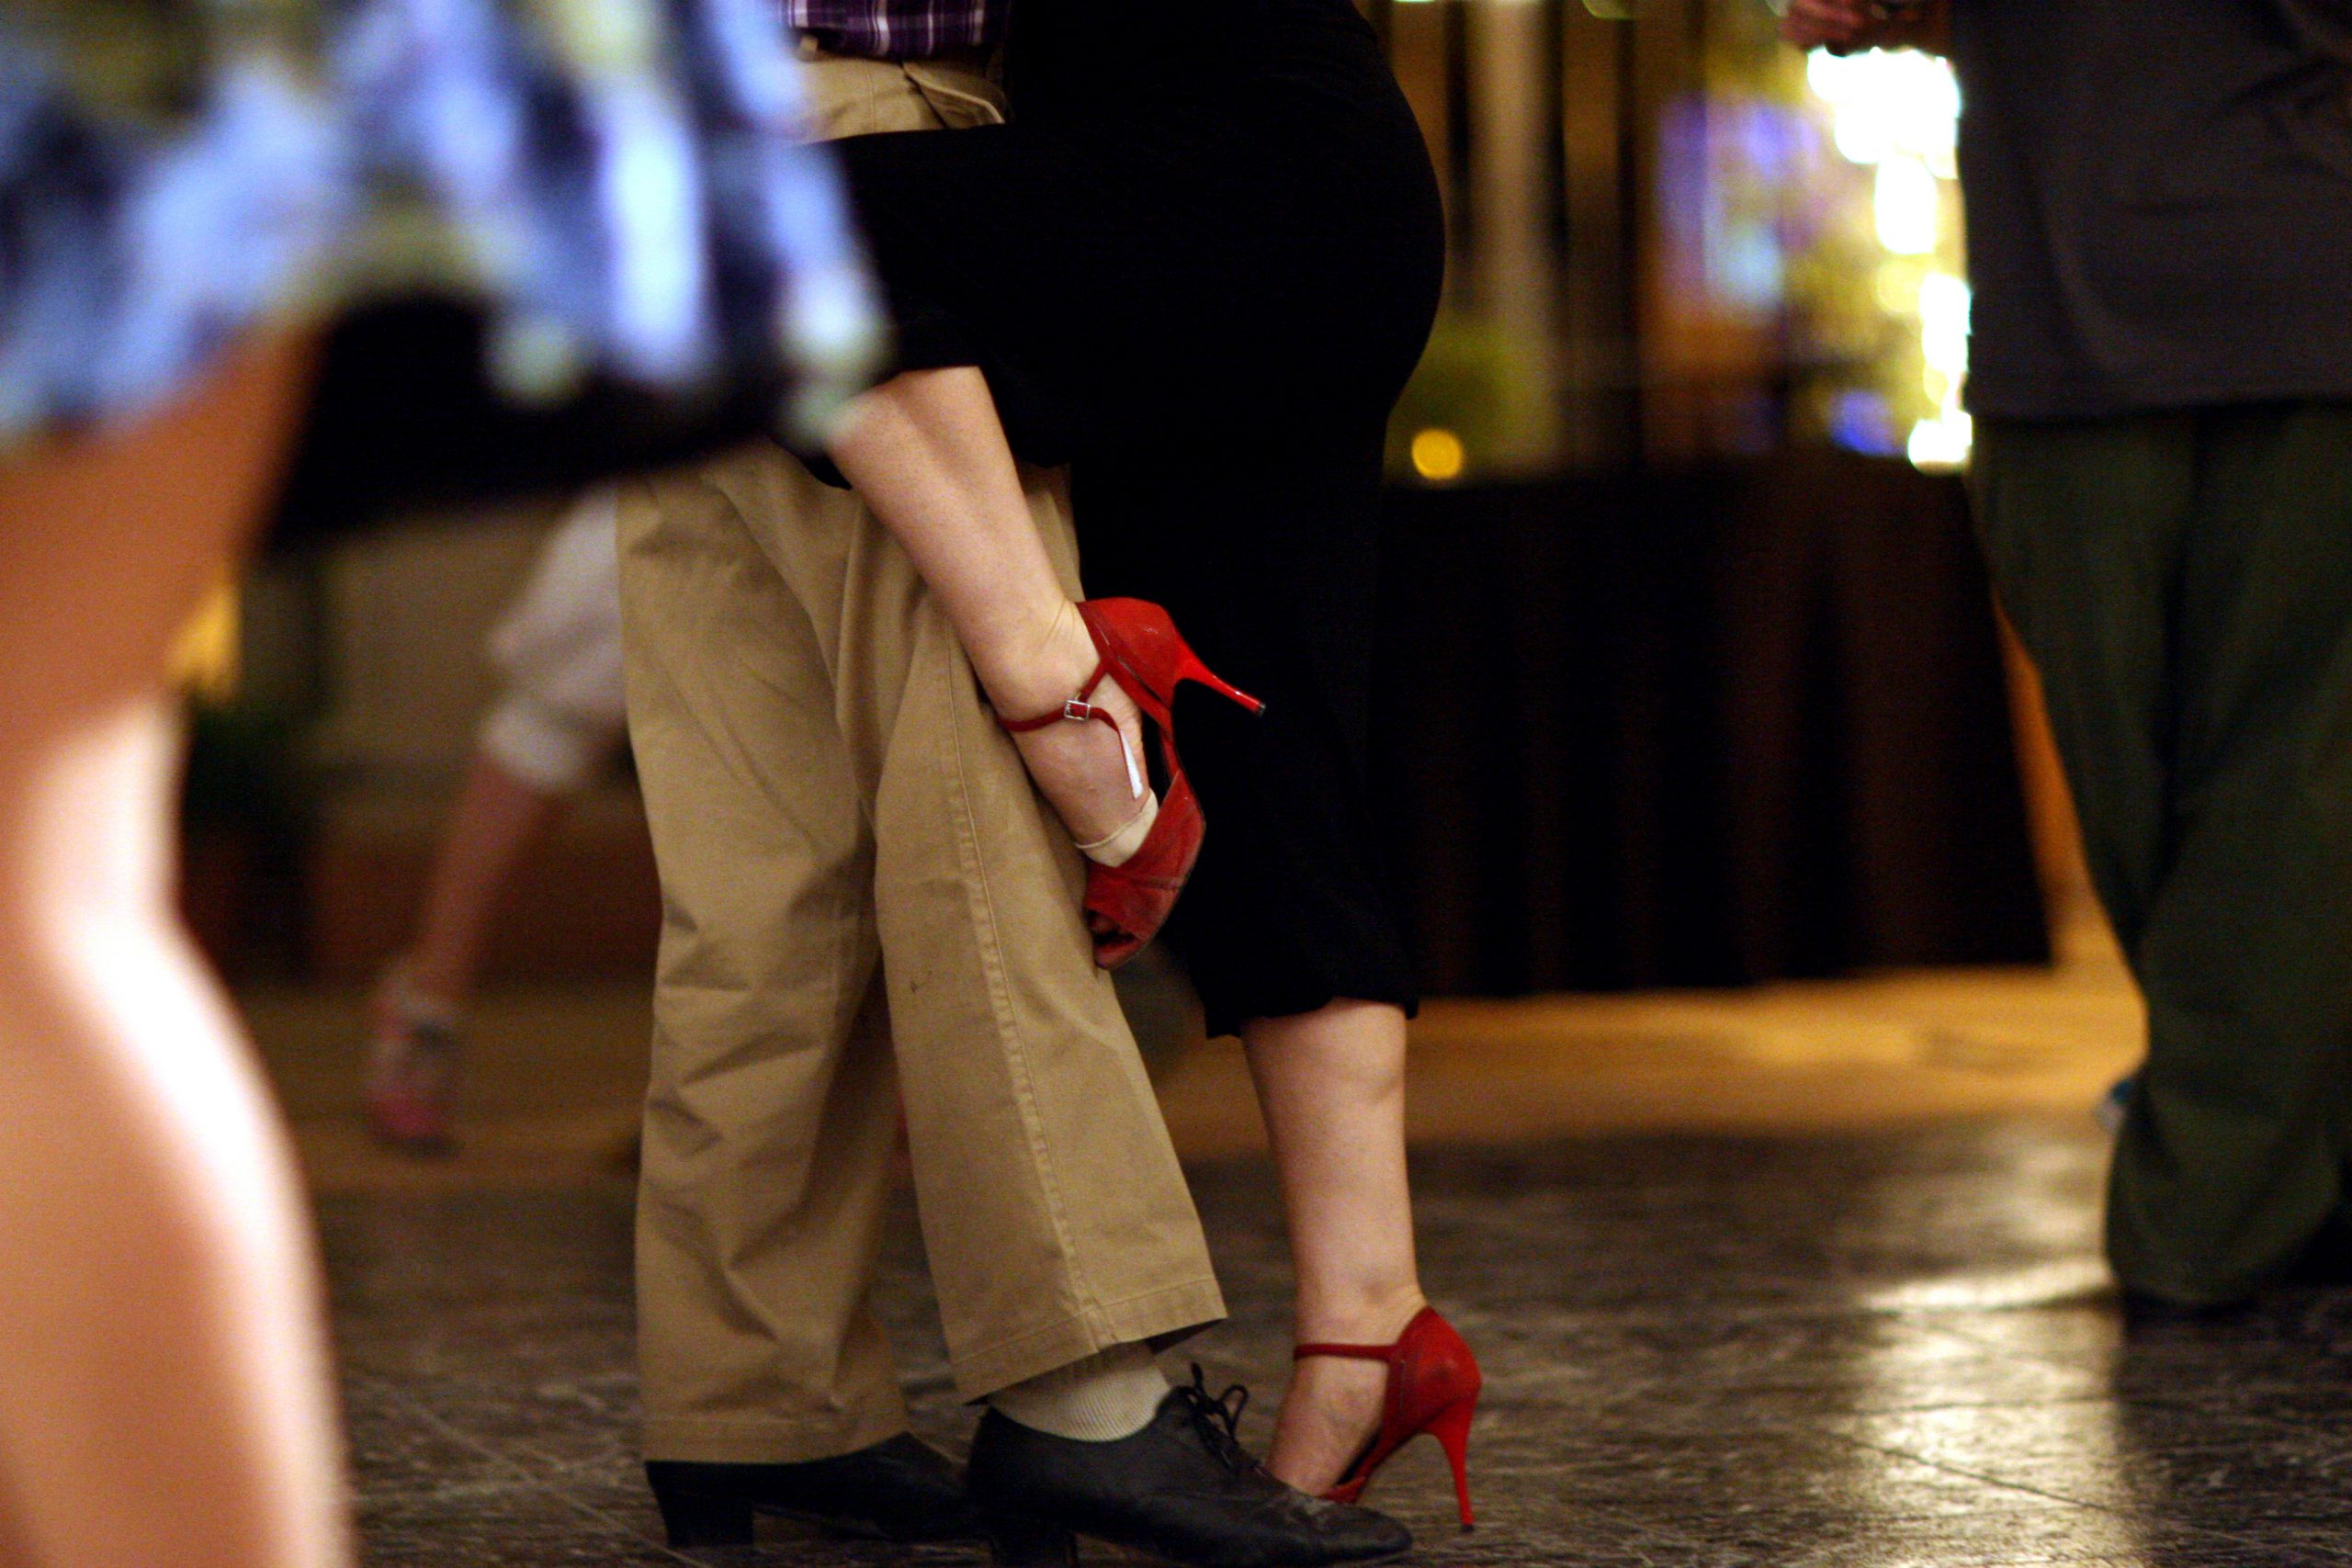 Close Dance Embrace during Argentine Tango Dance